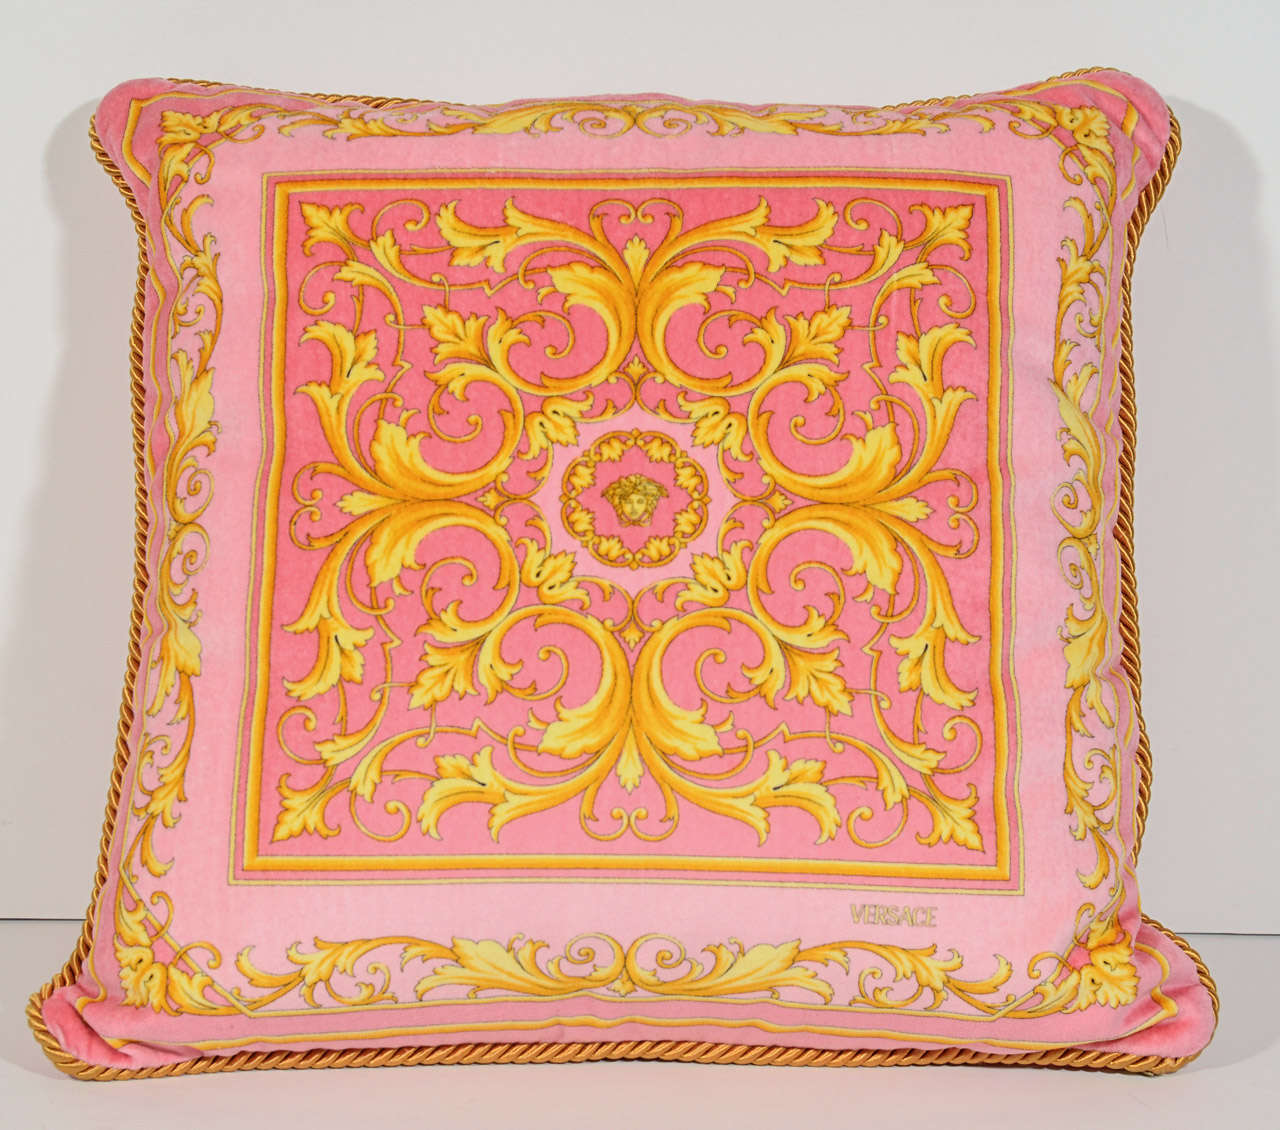 Throw Pillows Set Of 4 : Set of 4 Vintage Versace Throw Pillows with Scarf Print Designs at 1stdibs